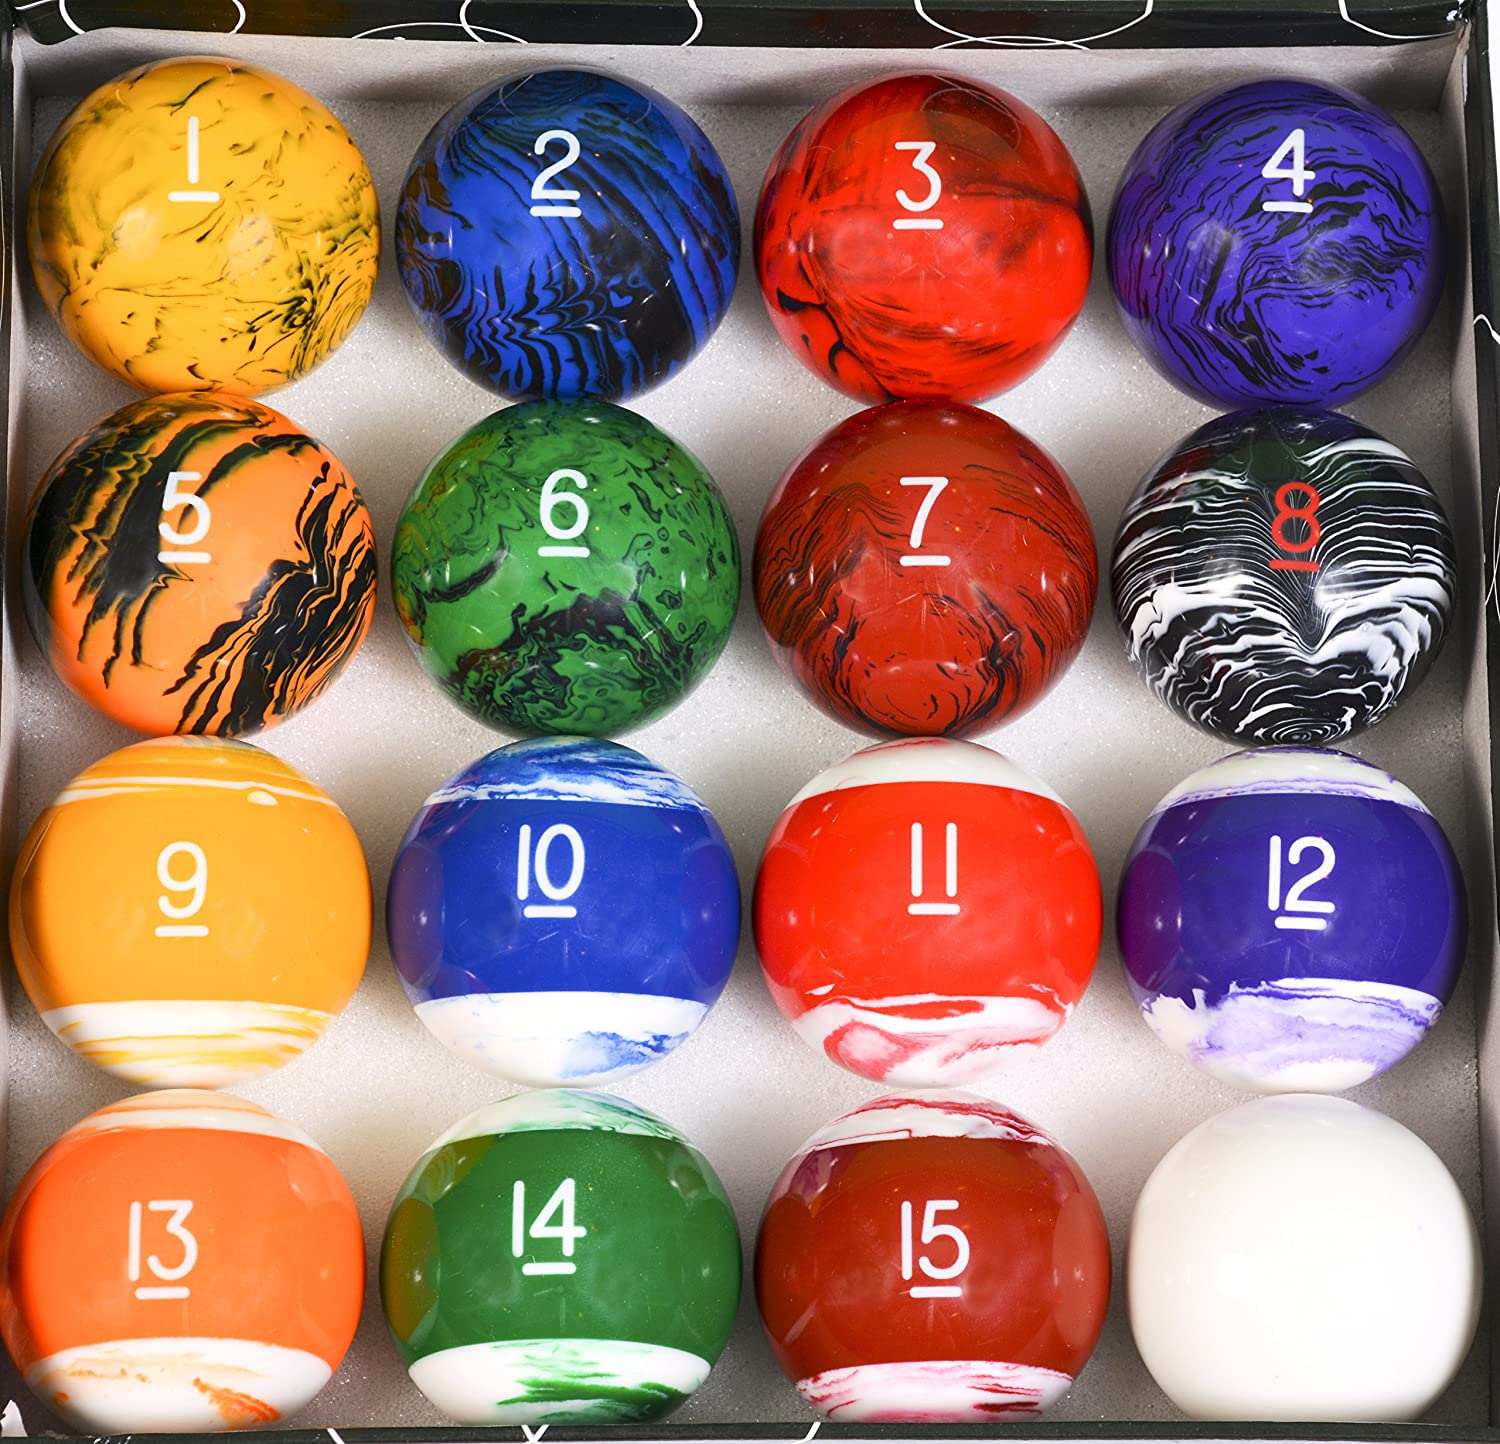 Iszy Billiards Pool Table Billiard Ball Set Marble Swirl Style Several Styles to Choose From Regulation Size /& Weight E03214techmarble